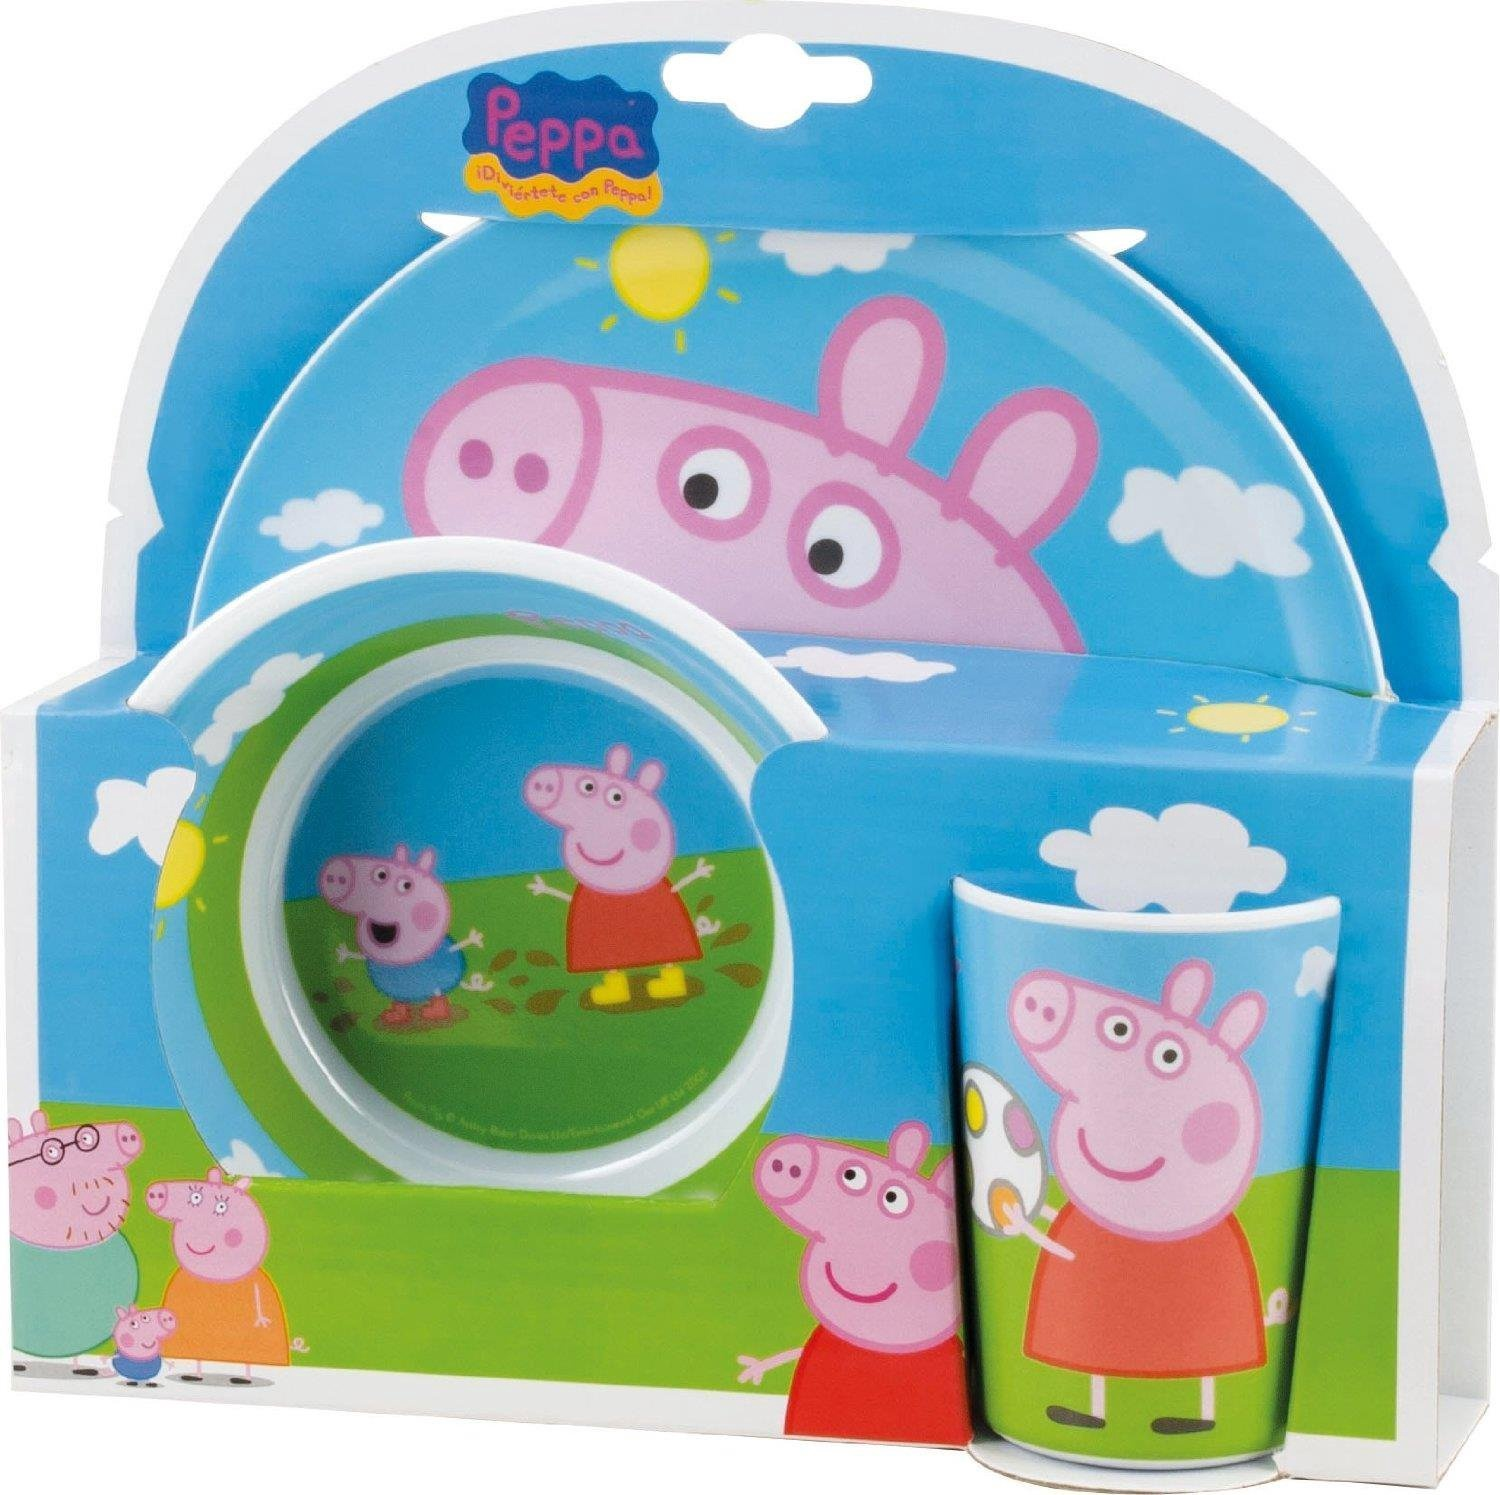 PEPPA PIG TABLEWARE 3PC